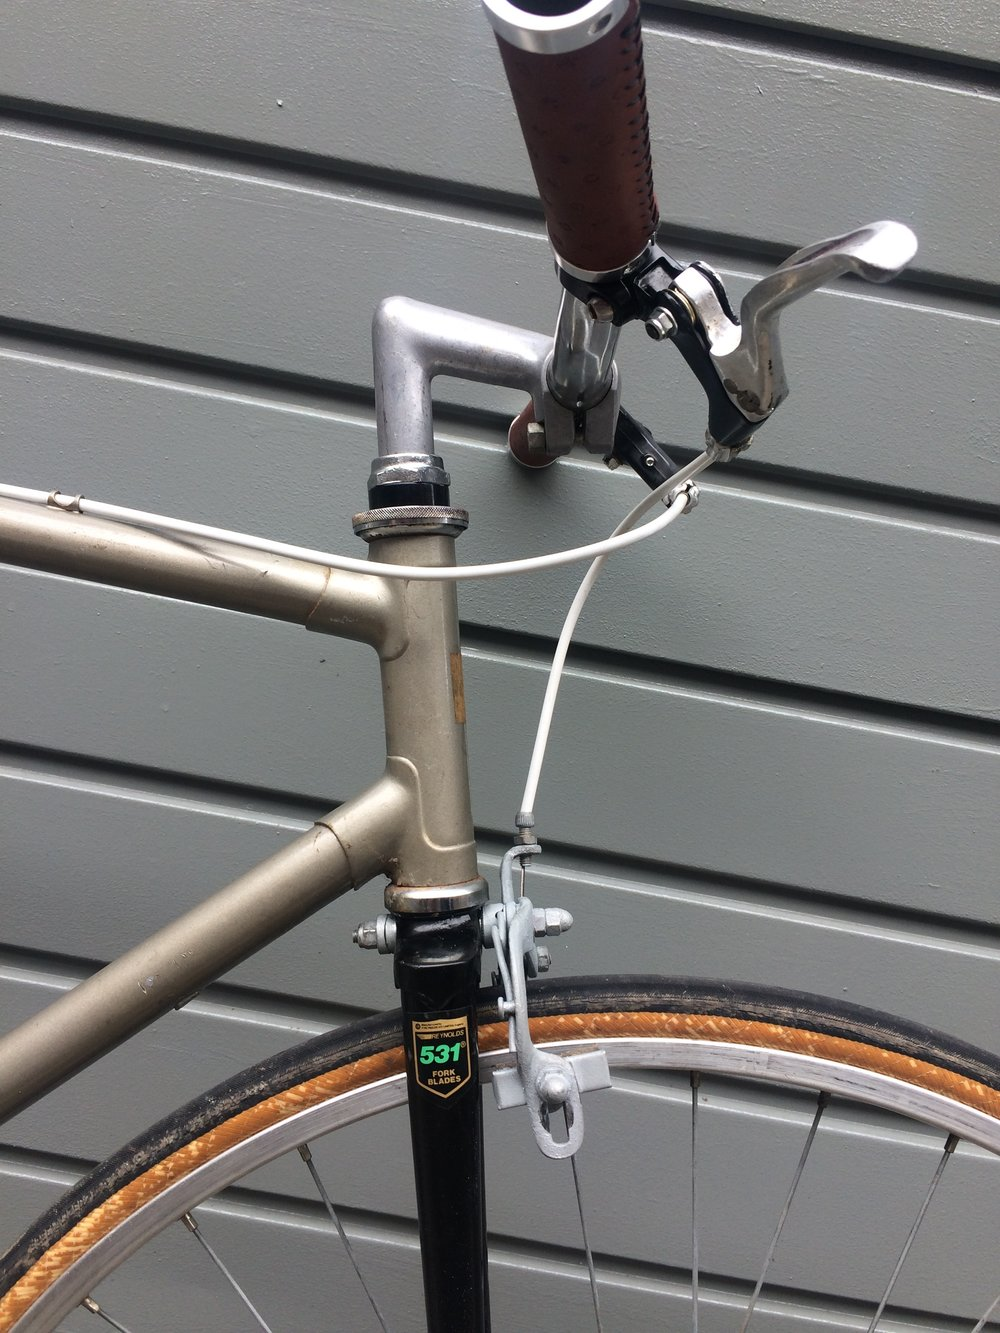 Only the handlebar grips, cables and chainring bolts are new